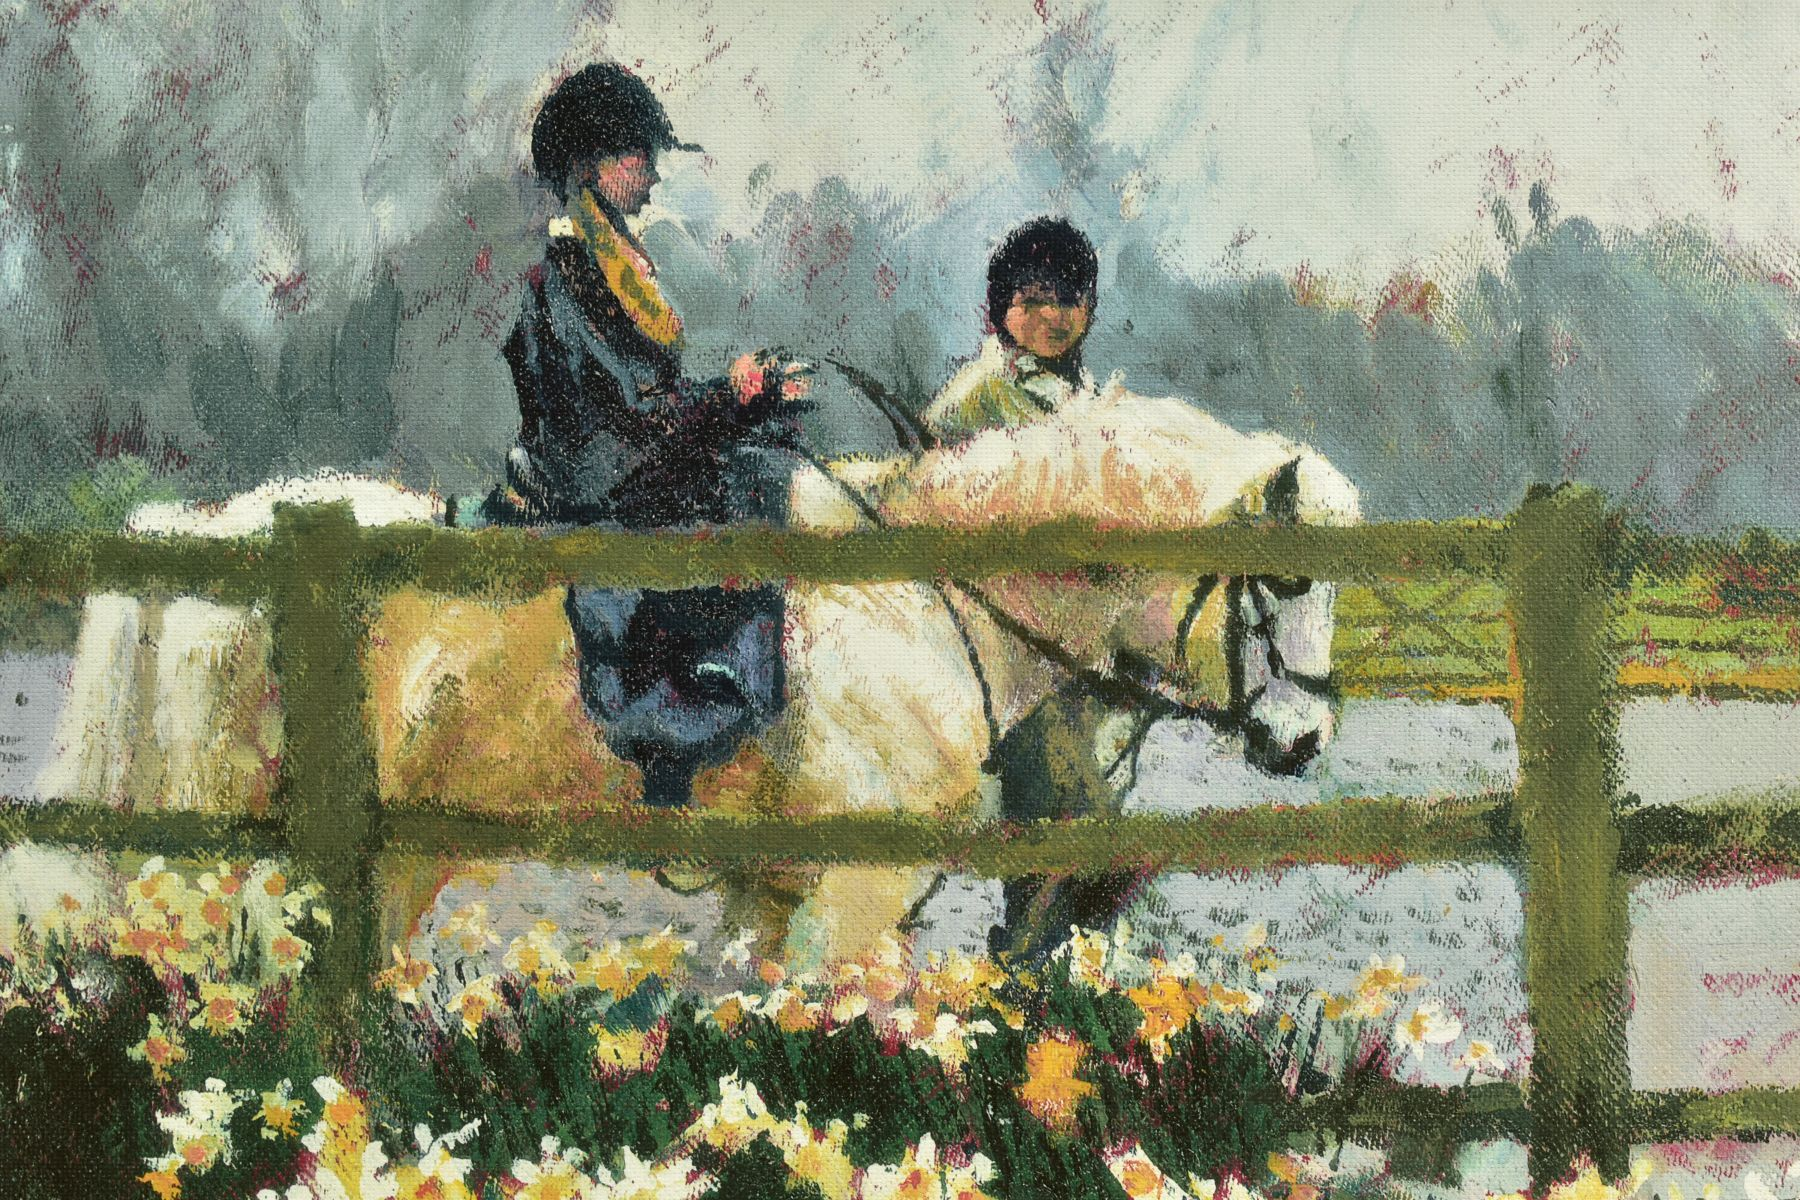 ROLF HARRIS (AUSTRALIAN 1930), a Limited Edition print depicting a young child on a Pony, 143/195, - Image 2 of 6